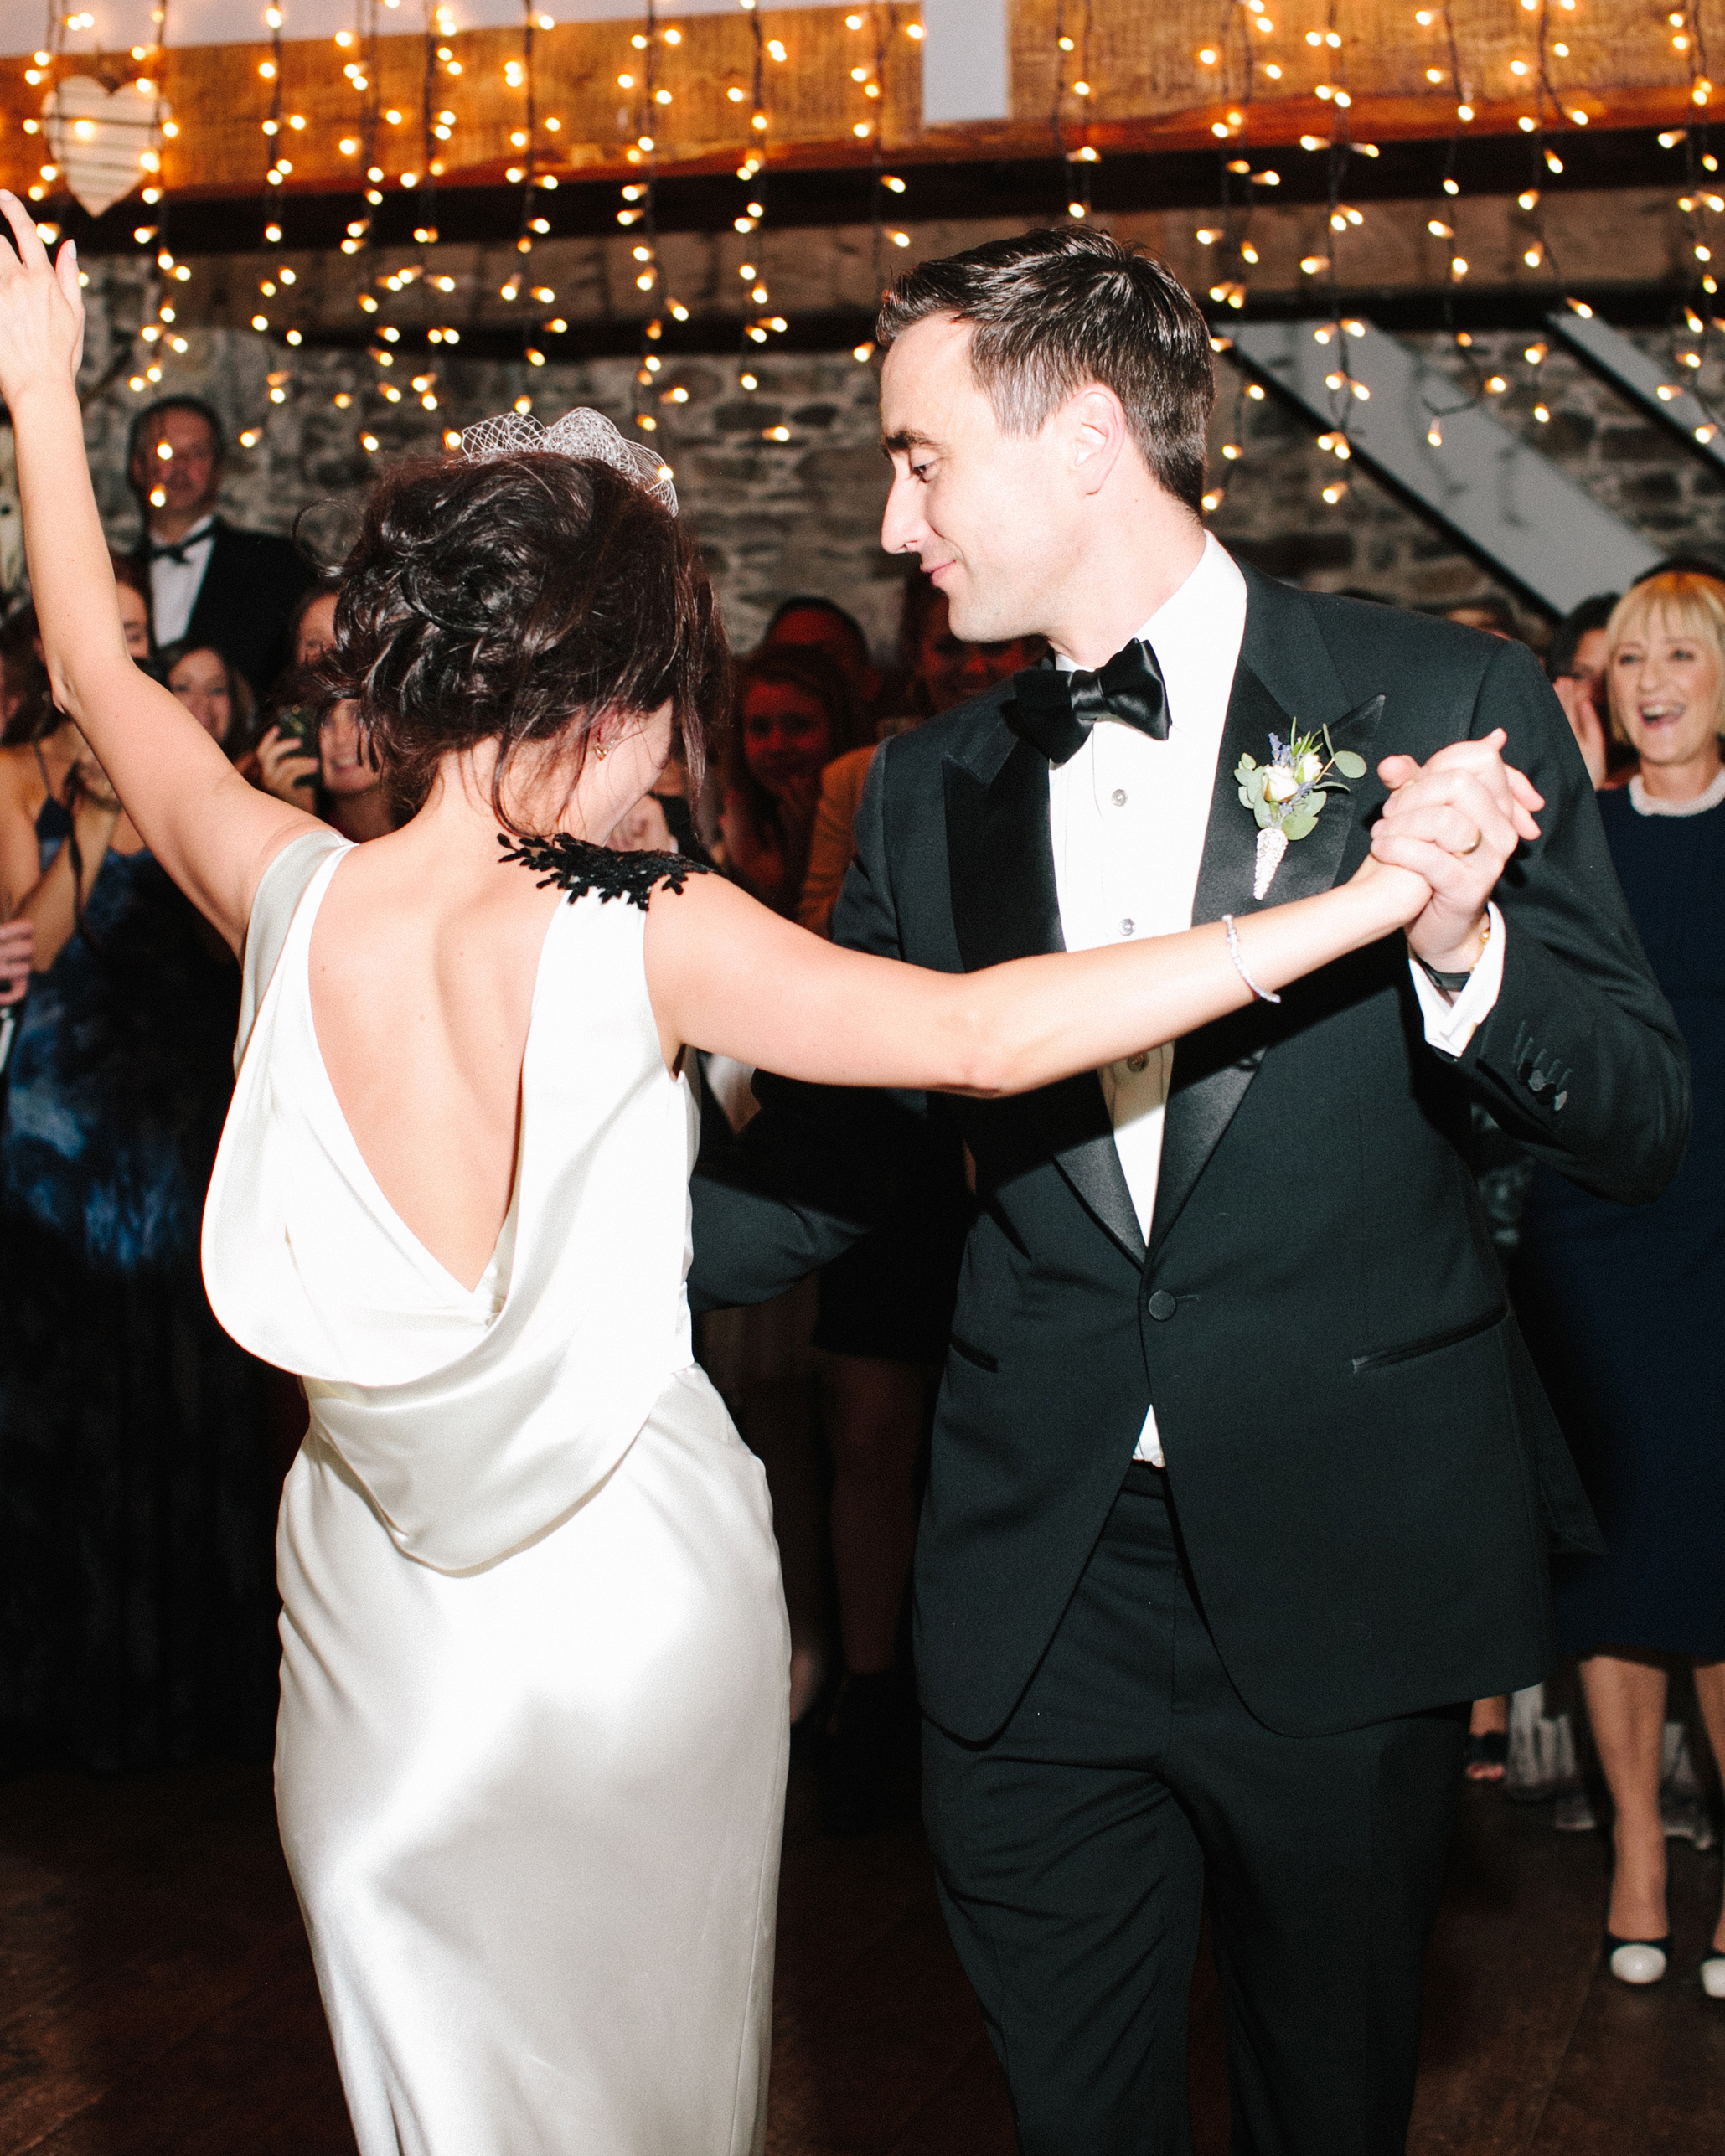 Married Dancing